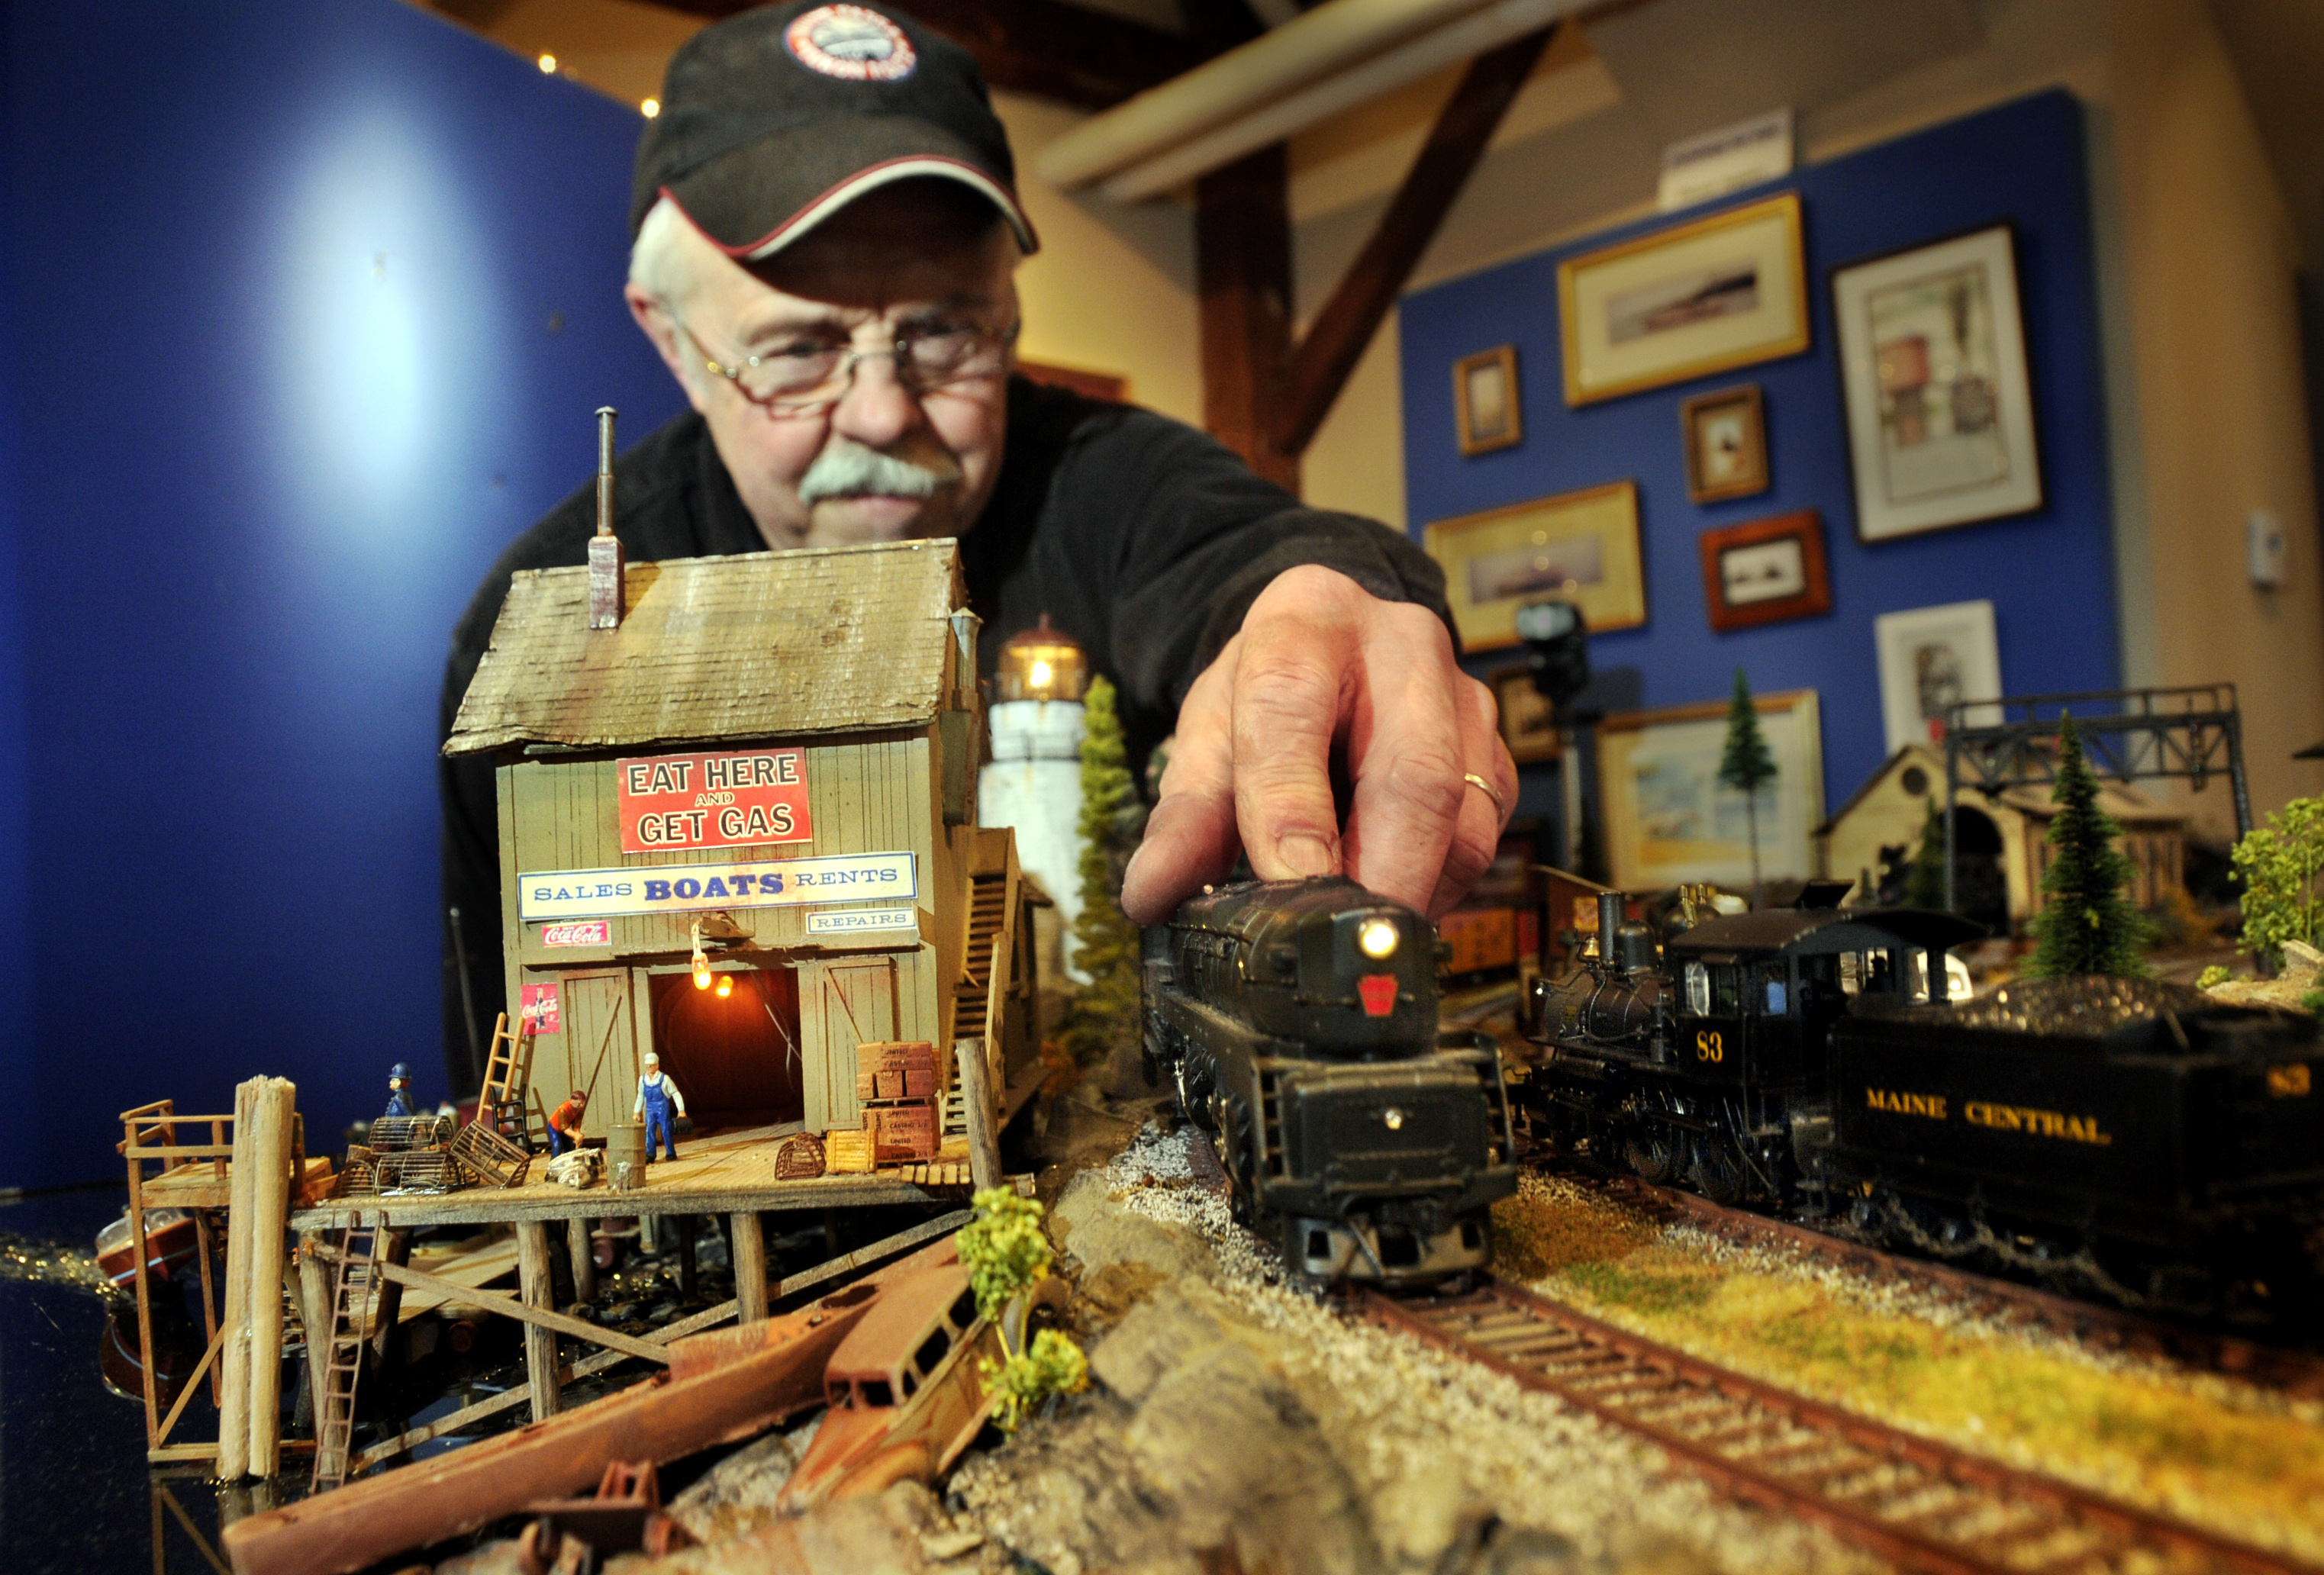 Steven Cryan, a local maritime and railroad artist and master model train builder has spent months putting together his latest creation on the 3rd floor of the museum.